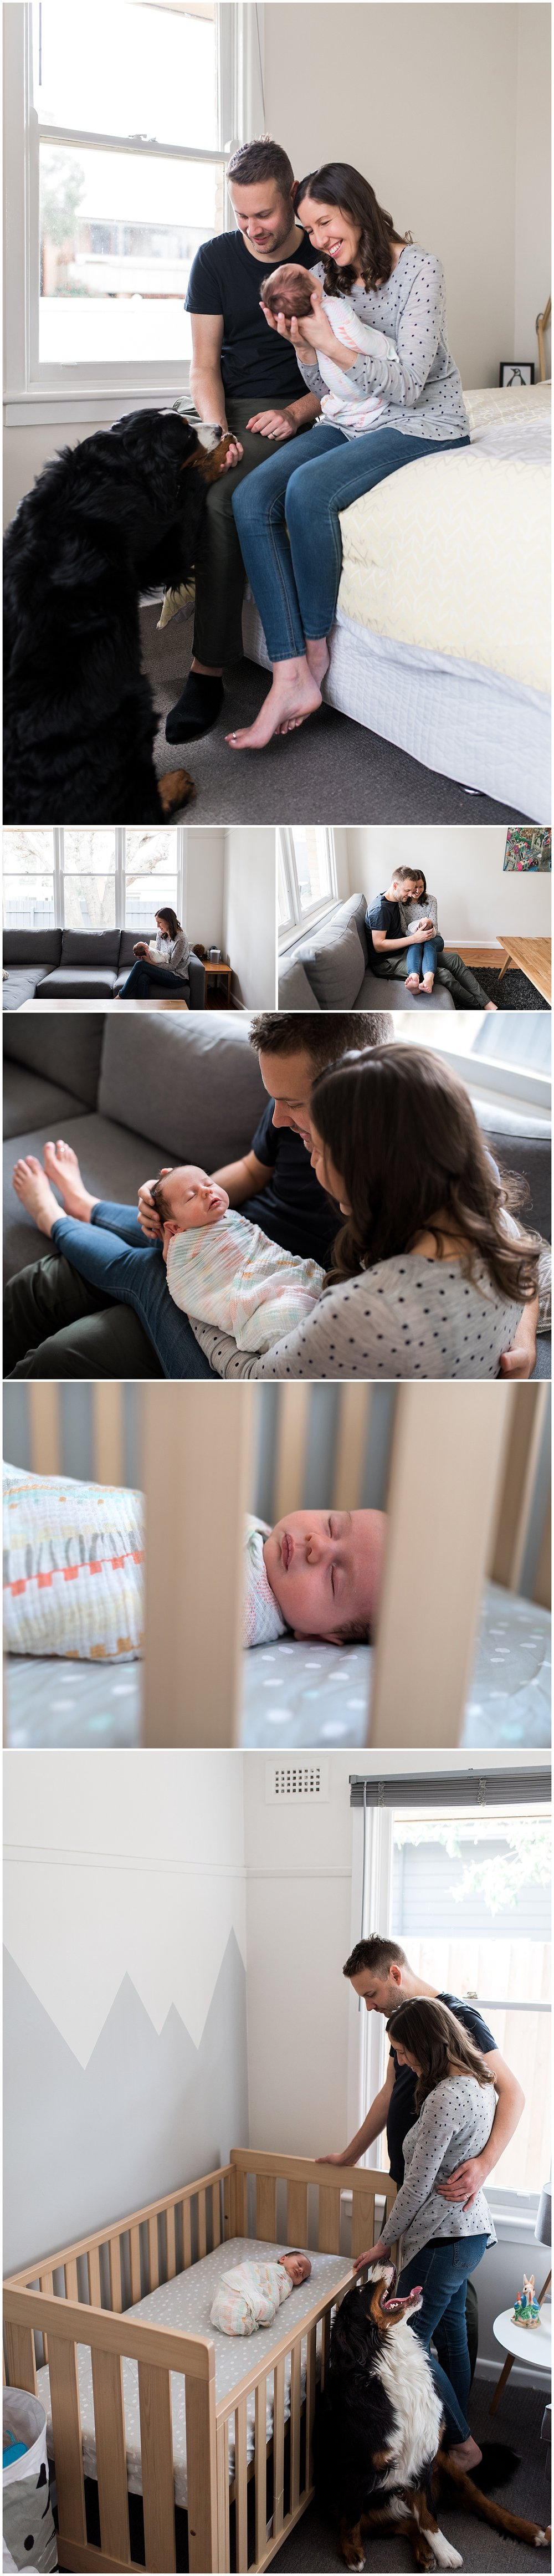 brunswick newborn lifestyle photographer